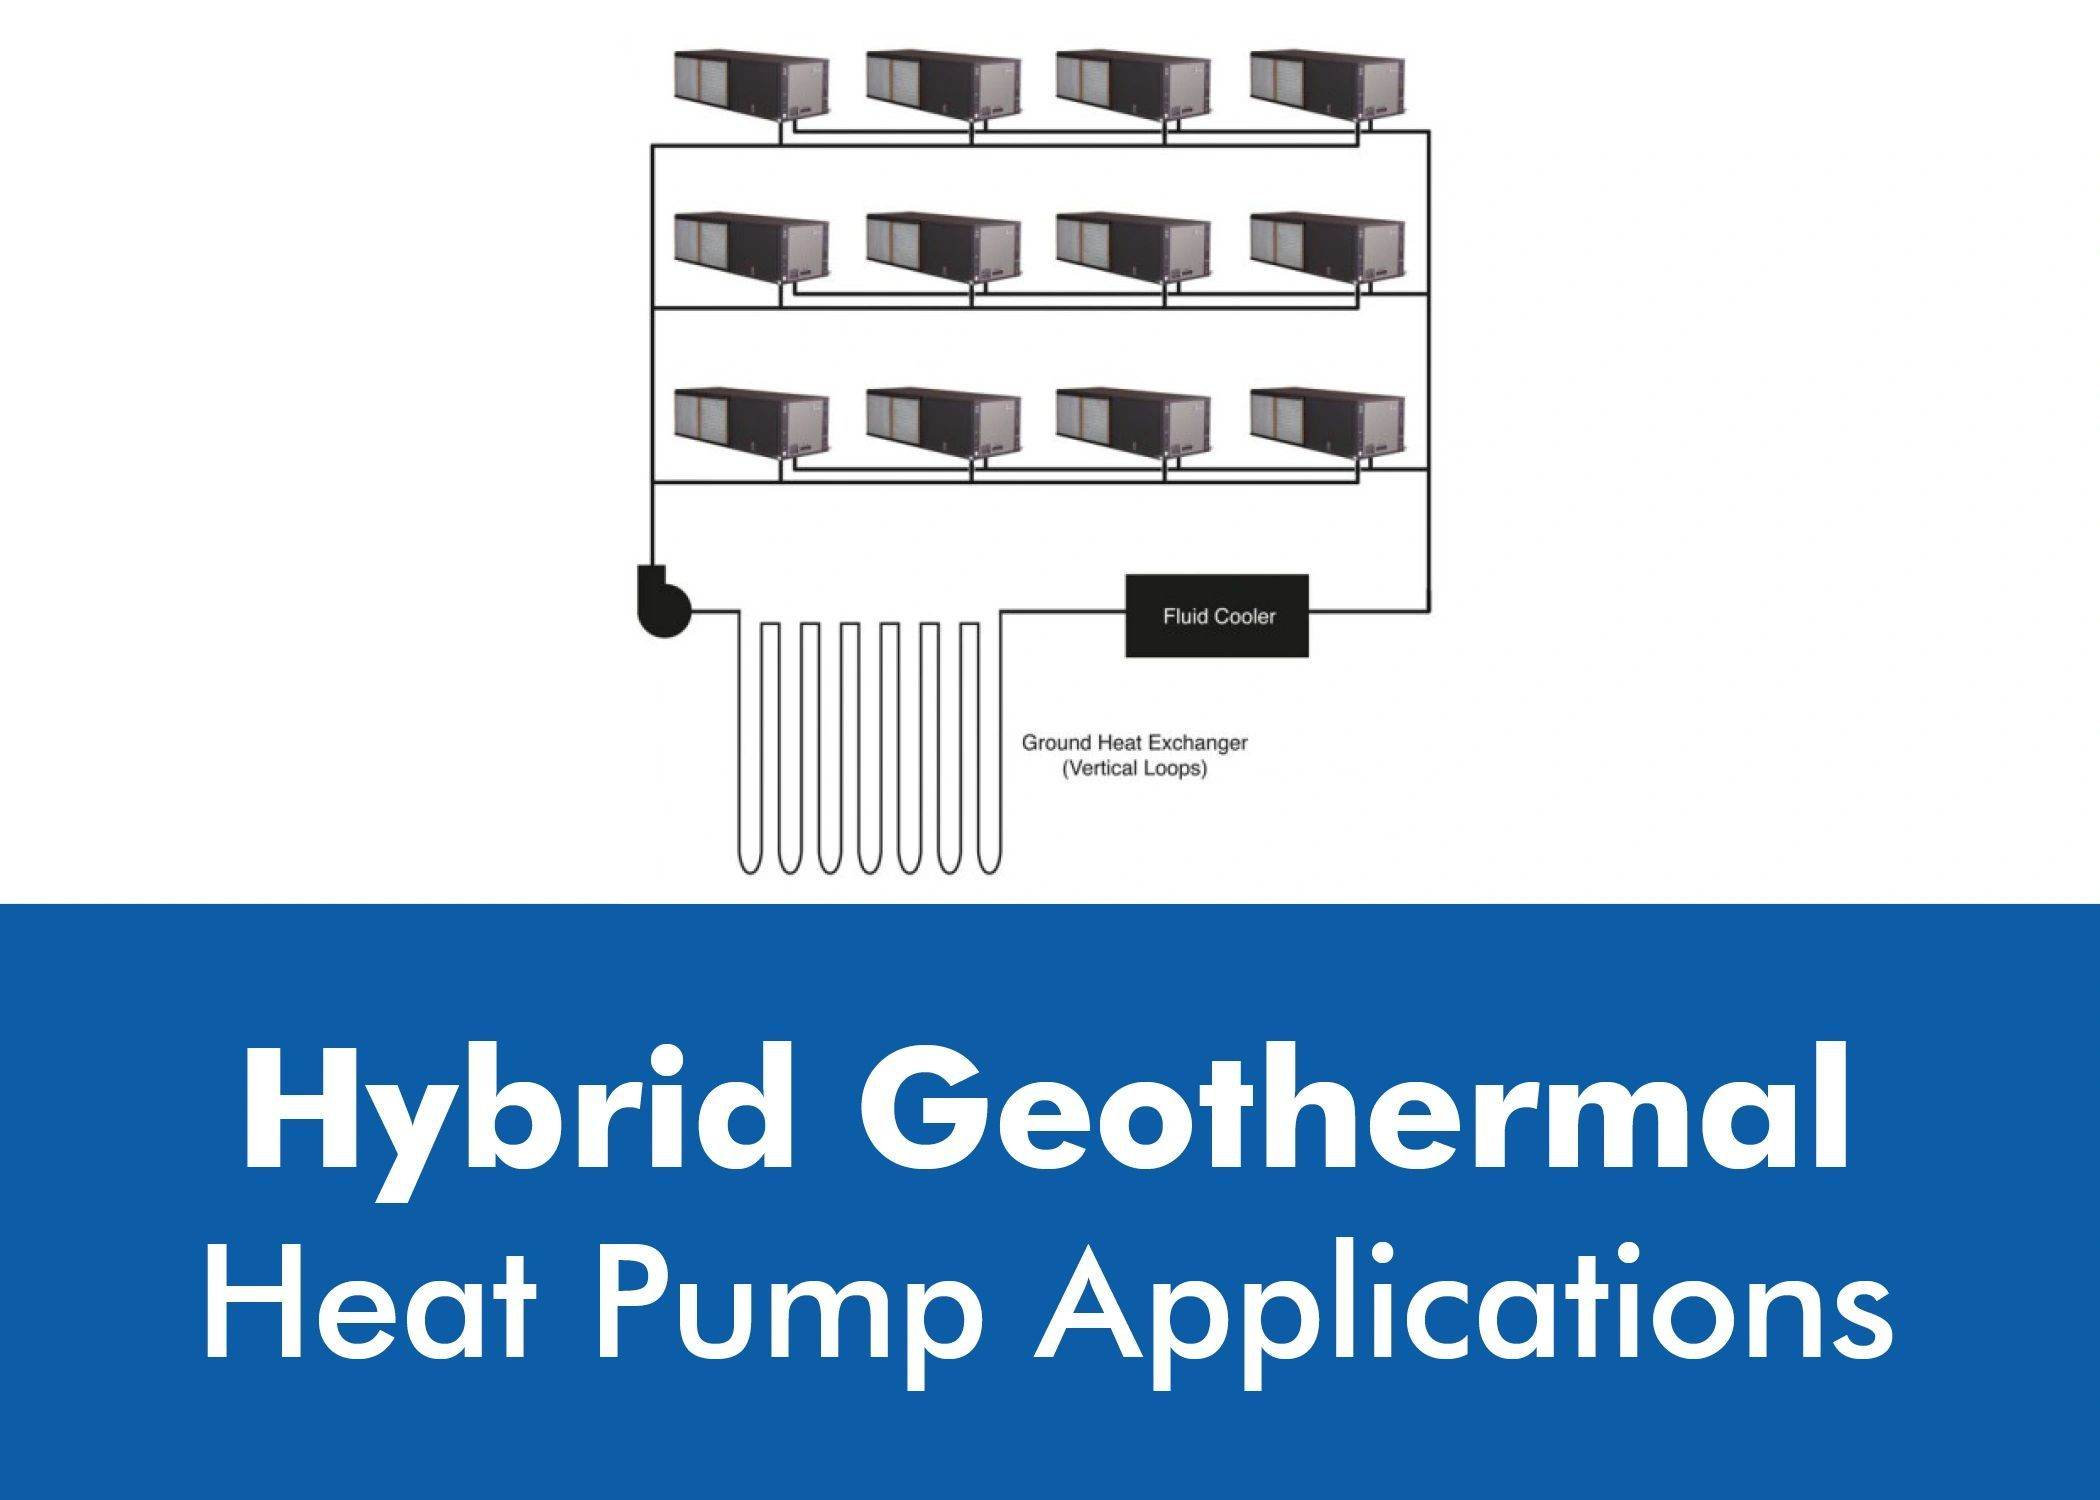 Hybrid Geothermal Heat Pump Applications Hybrid Designs Blend The Use Of Geothermal Resources And Conventional Heat